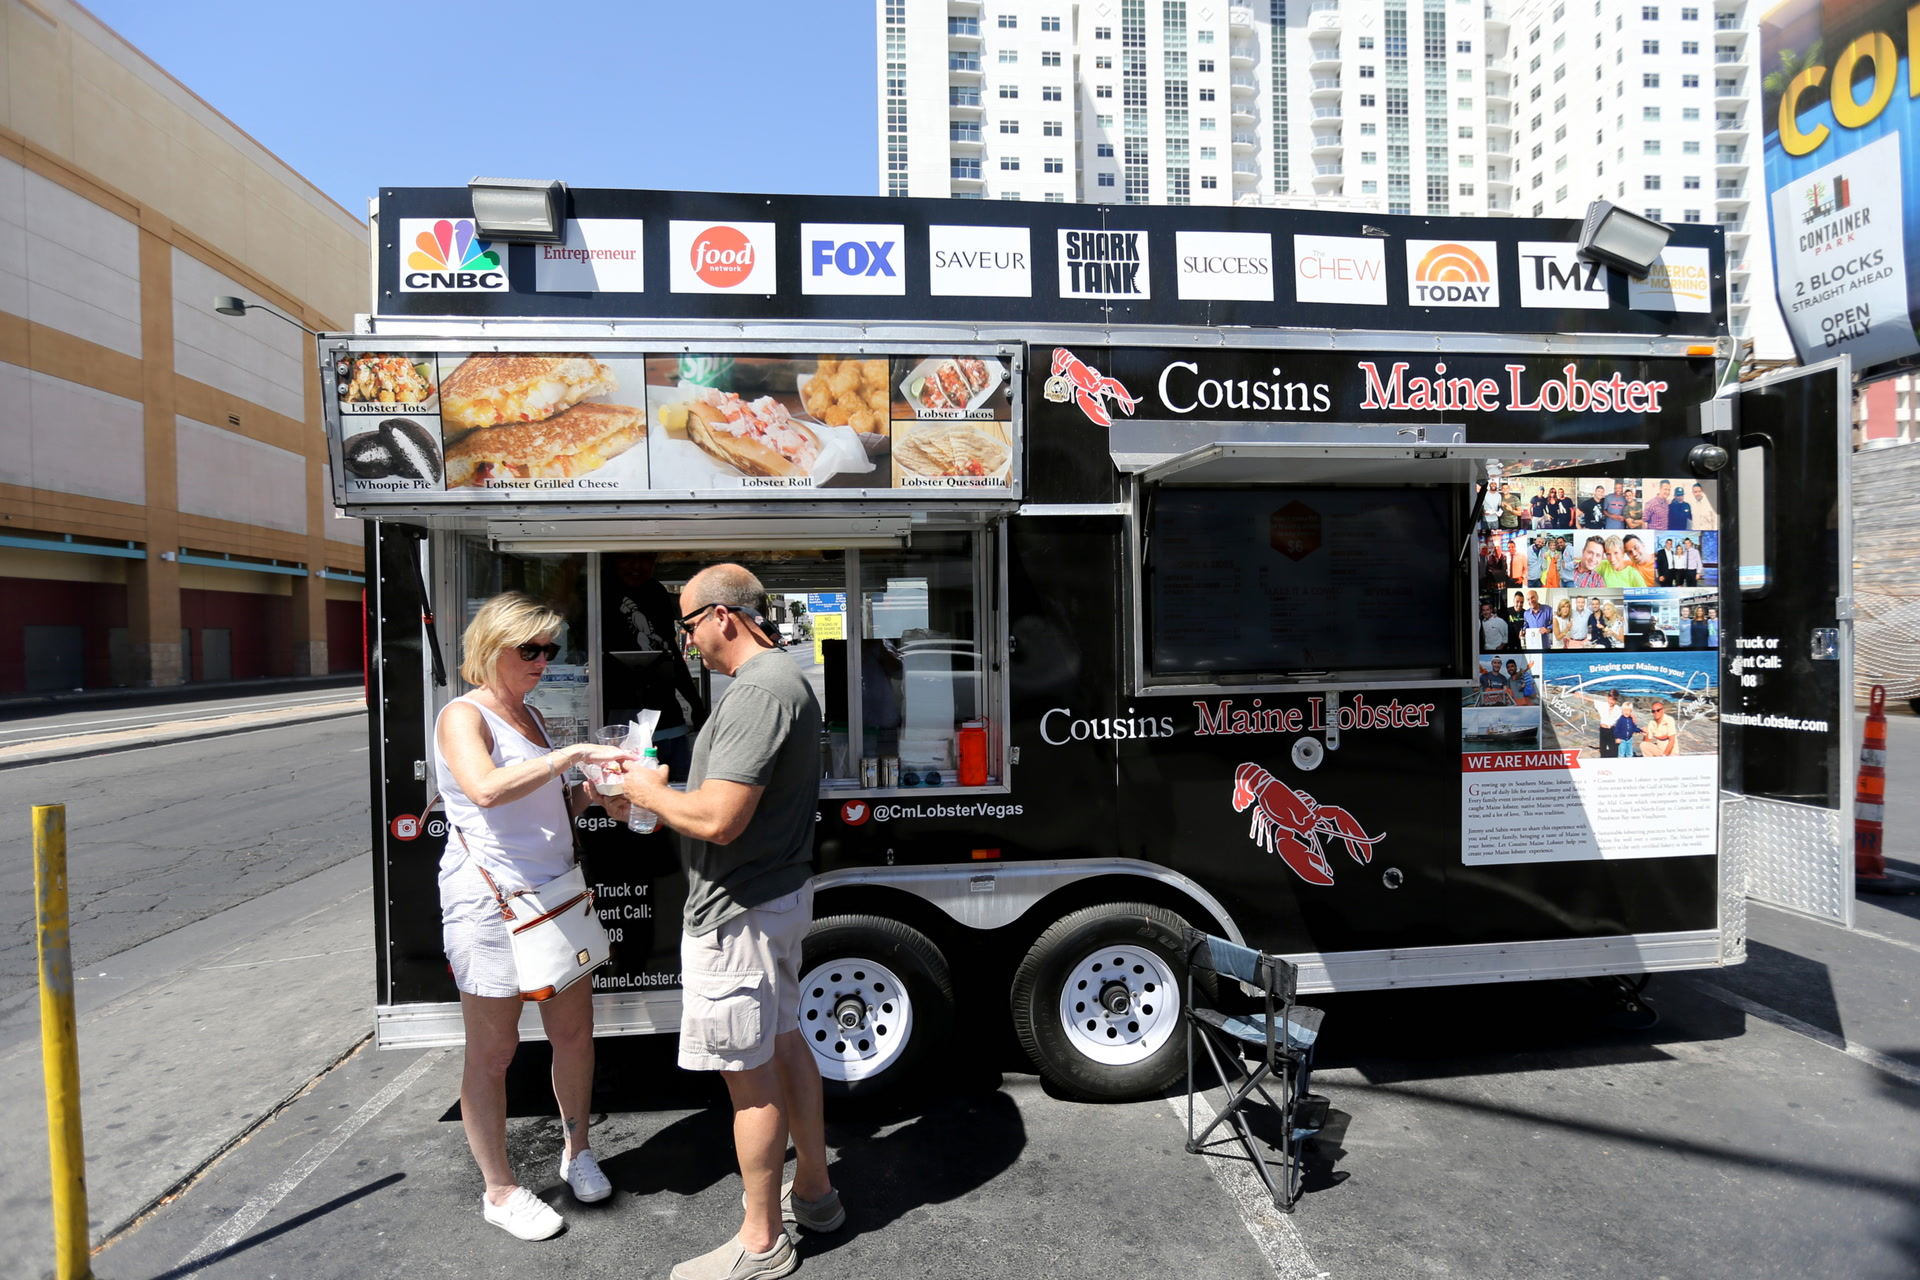 Image of cousins maine lobster food truck